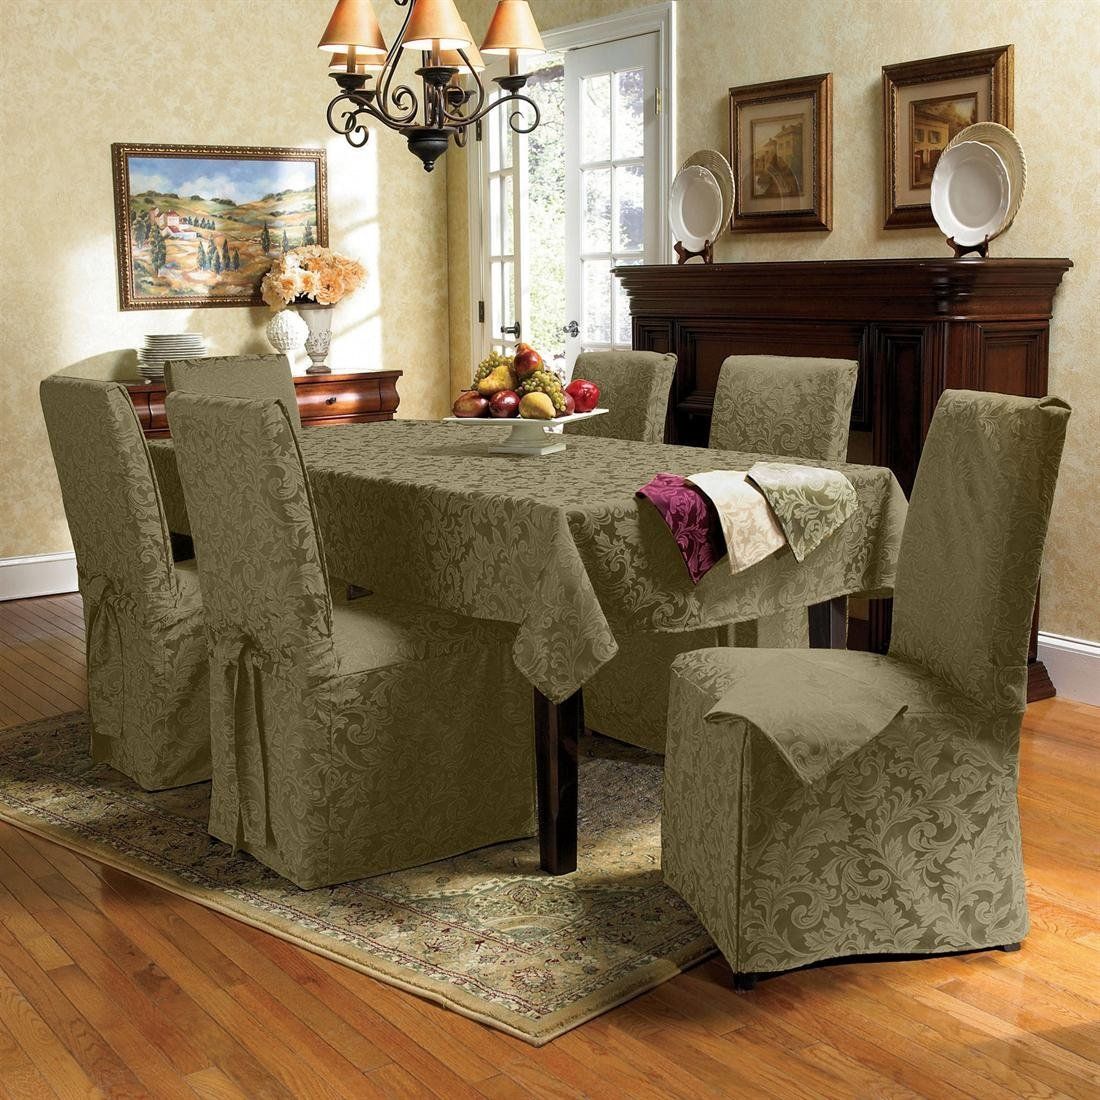 Modern Dining Room Chair Seat Covers Home Decor Furniture with Living Room Set Covers